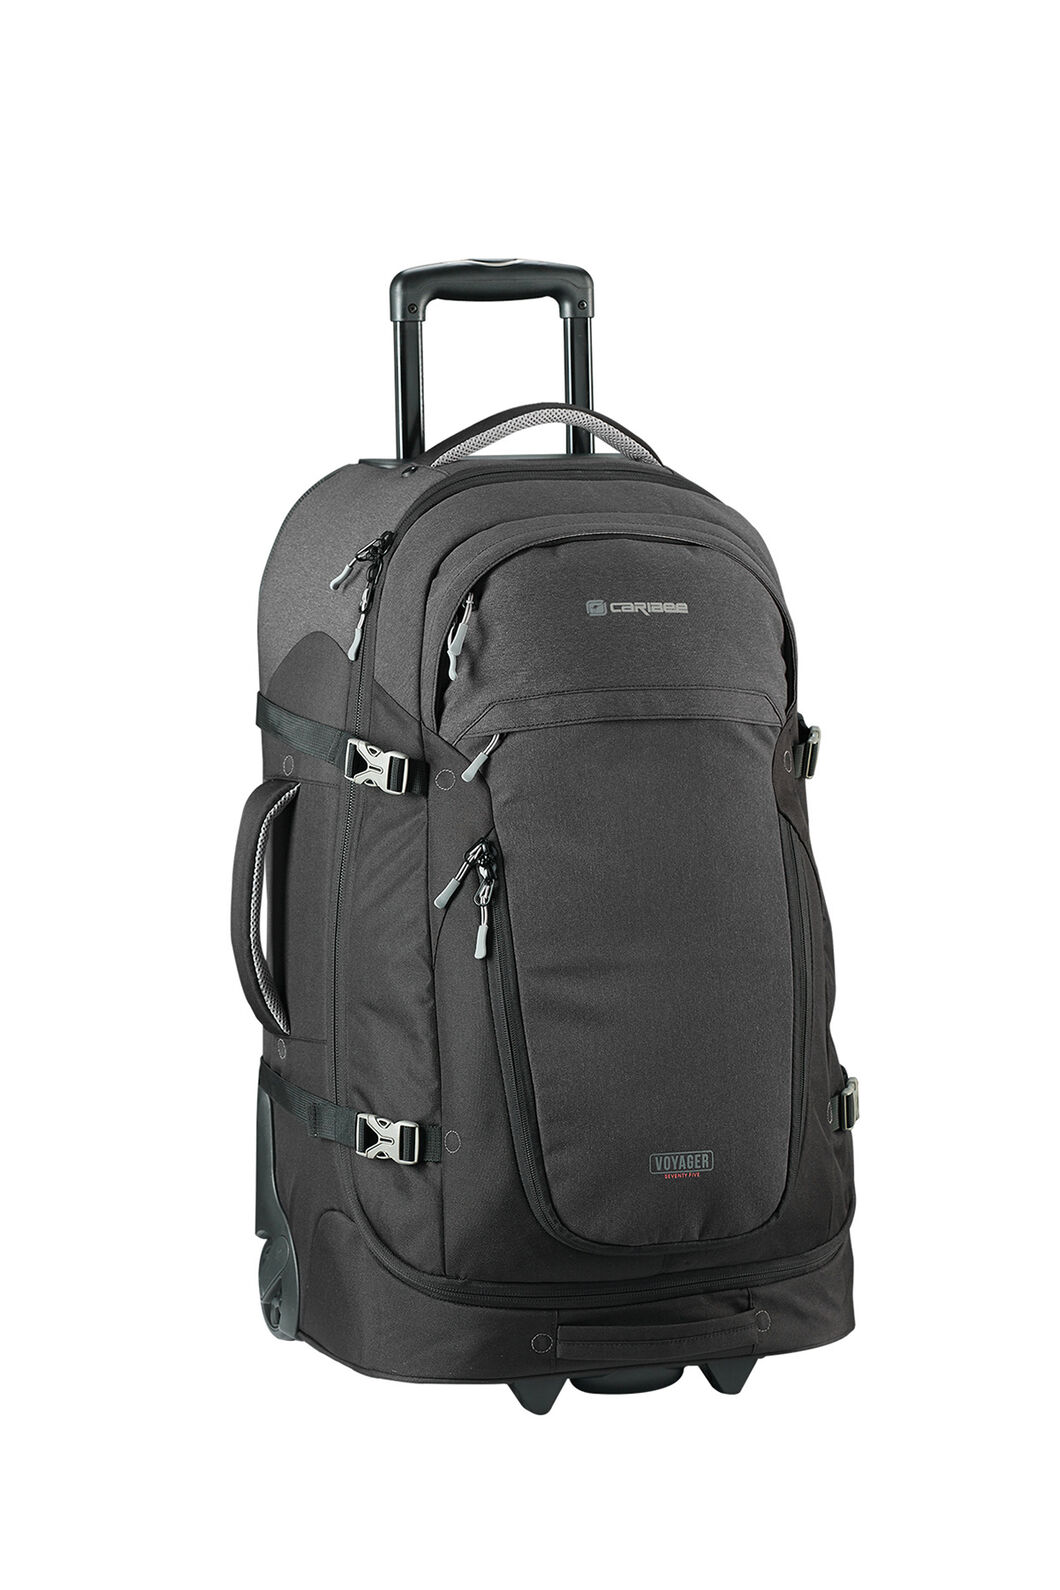 Caribee Voyager 75L Wheeled Luggage, None, hi-res